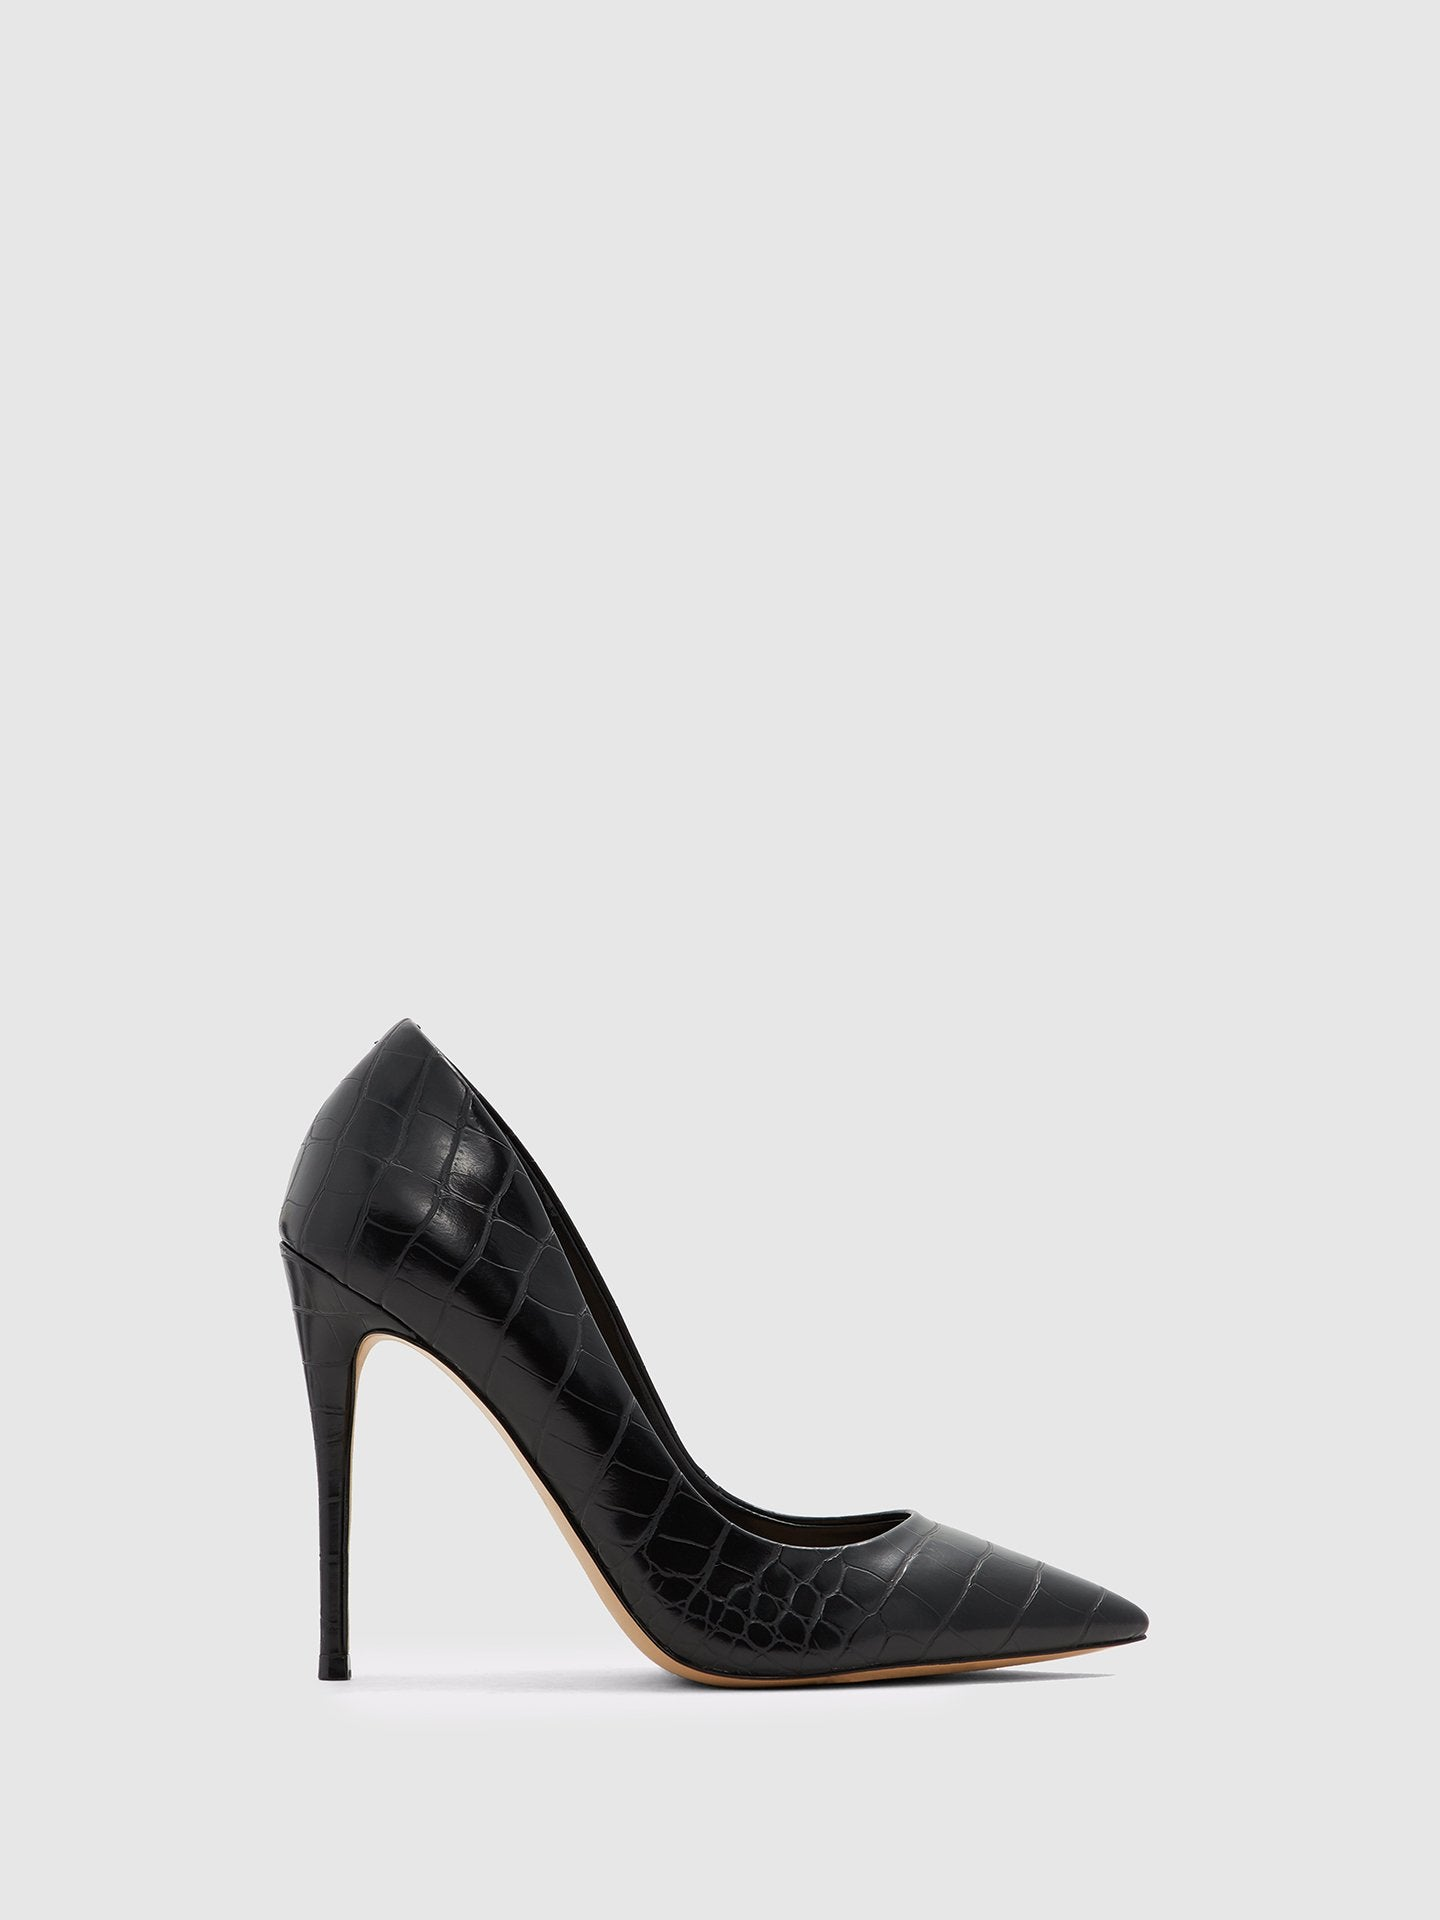 Aldo Brown Black Stiletto Shoes